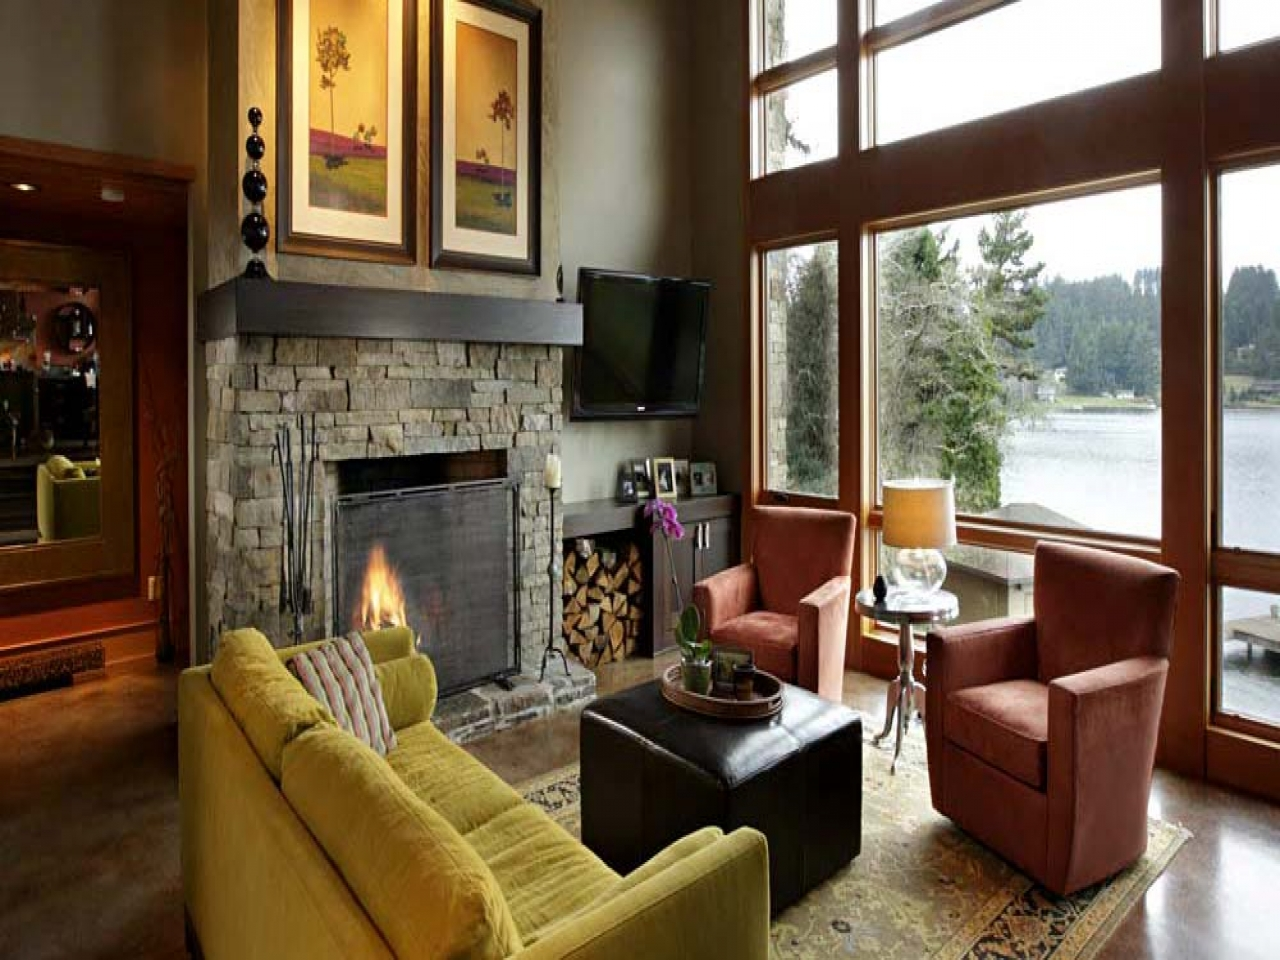 Lake House Traditional Interior Design Interior Lake House Decorating Ideas Lake Home Design